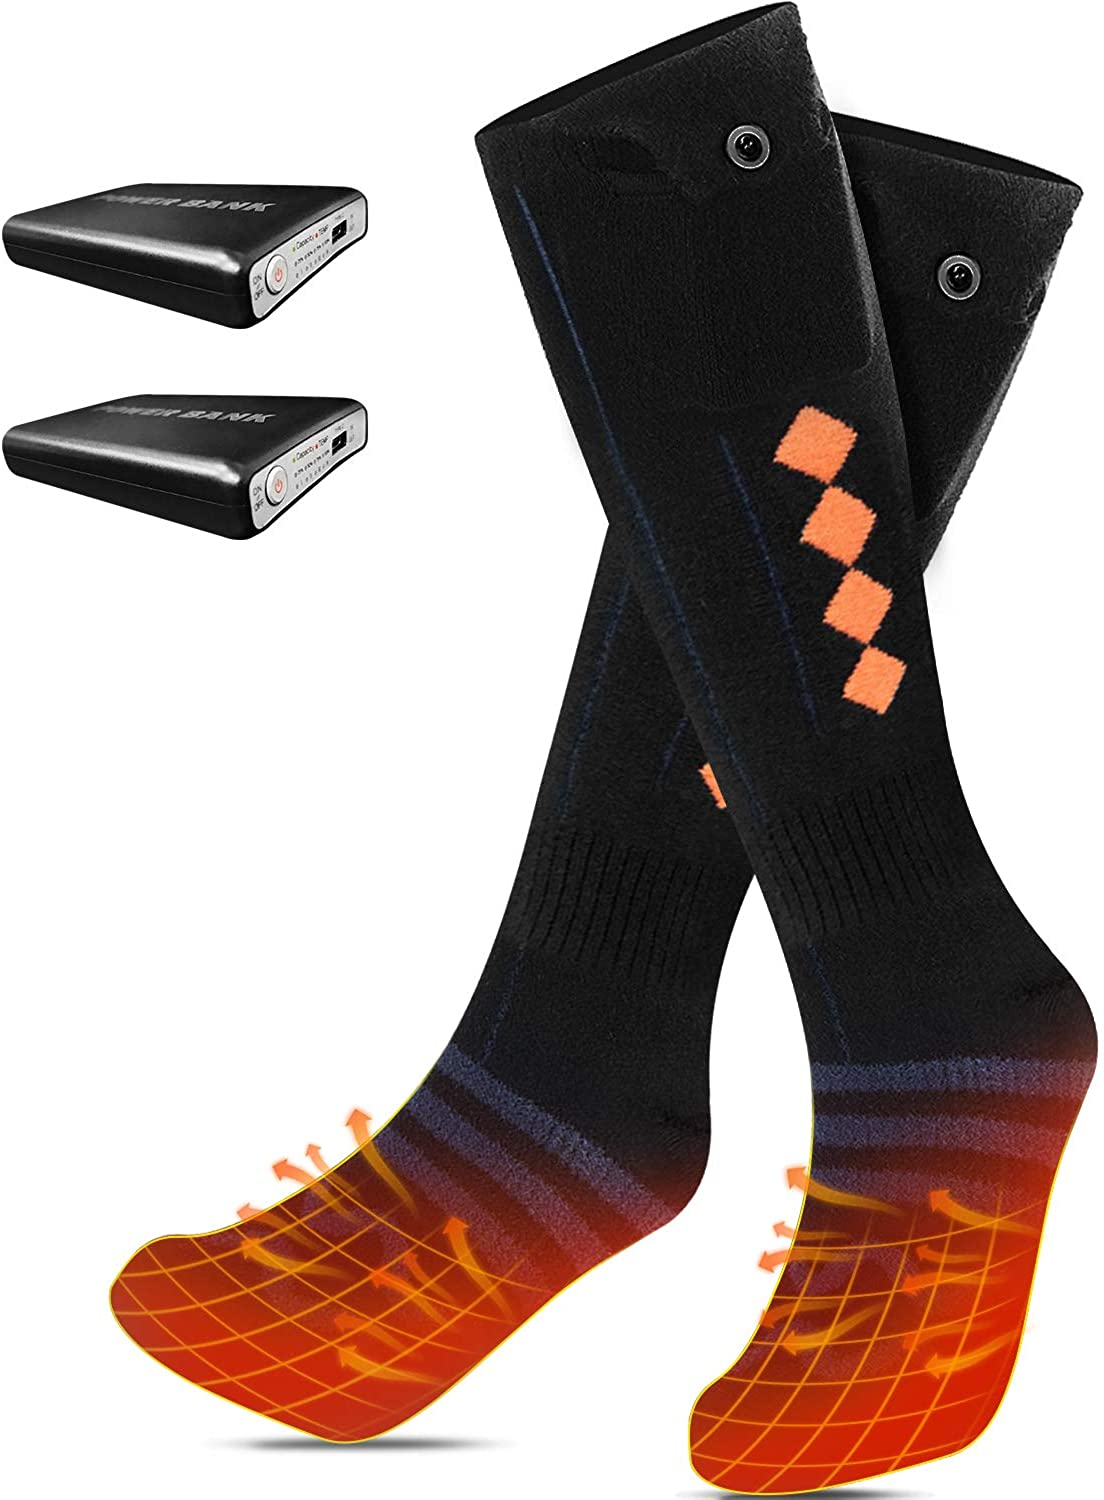 Heated Socks for Men Women Heat Up to 18 Hours, 5000mAh Rechargeable Electric Winter Thermal Socks for Skiing Hunting Hiking